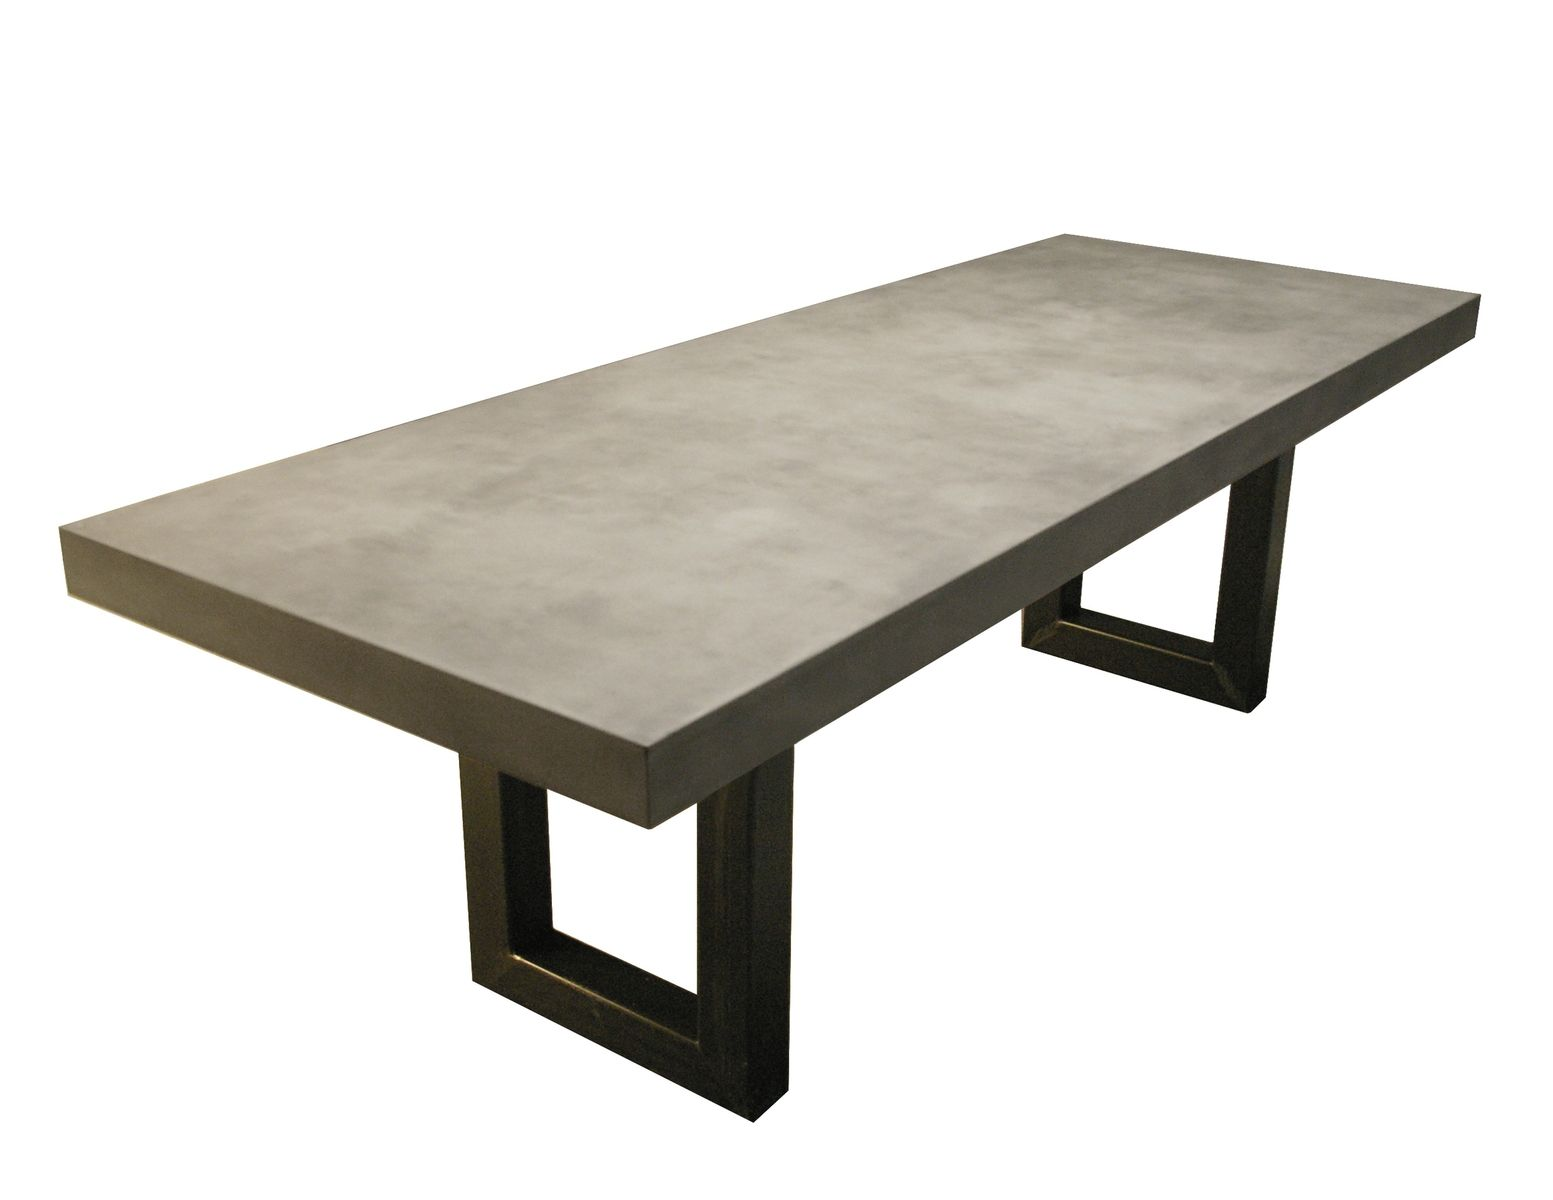 Zen Concrete Table